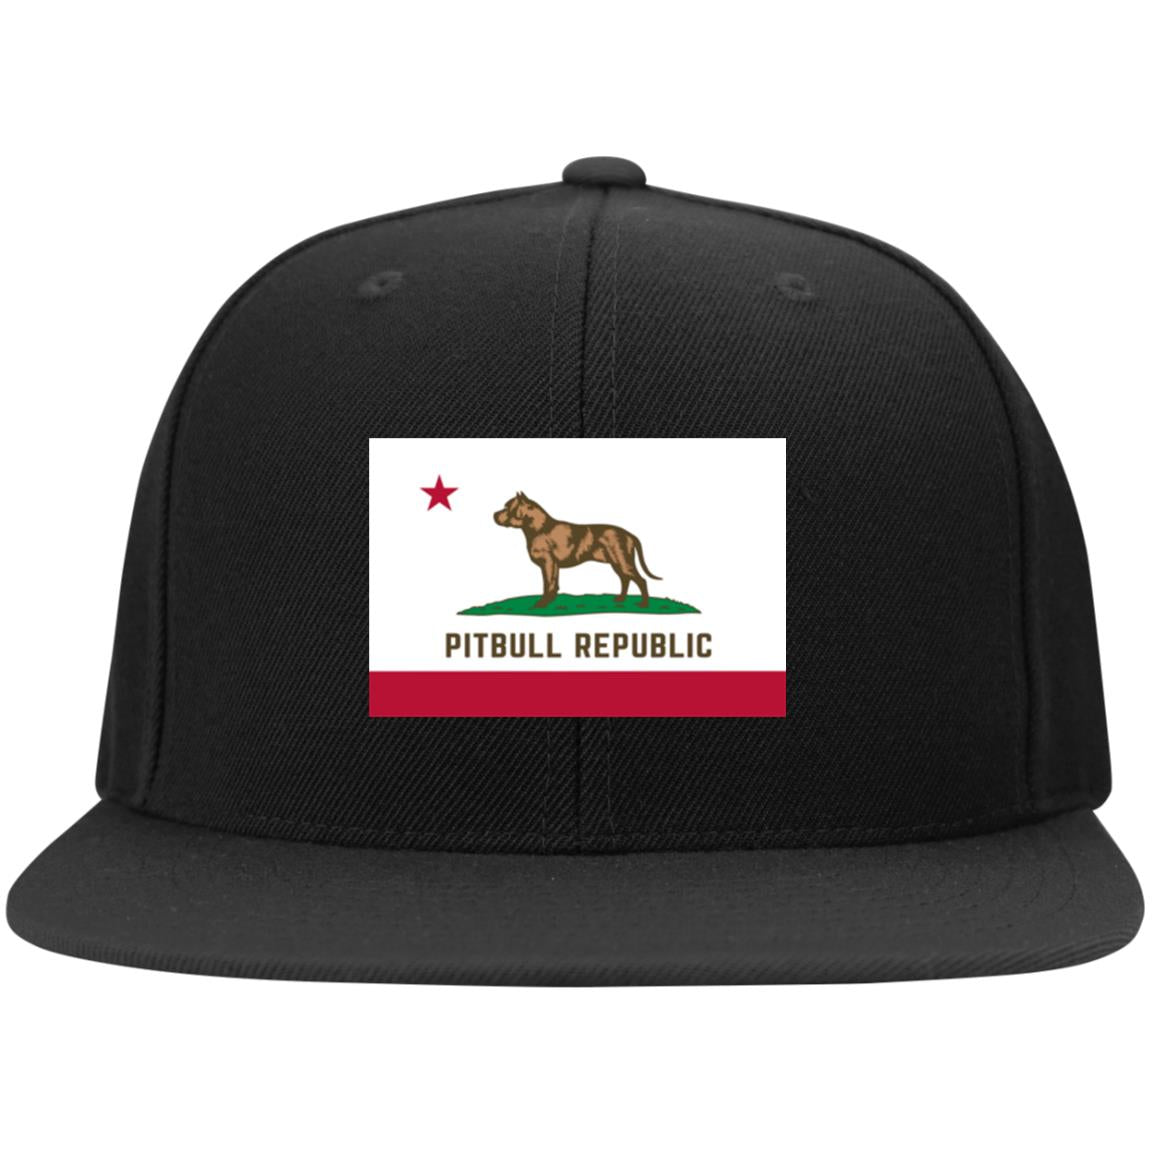 Pitbull Republic Snapback Hat